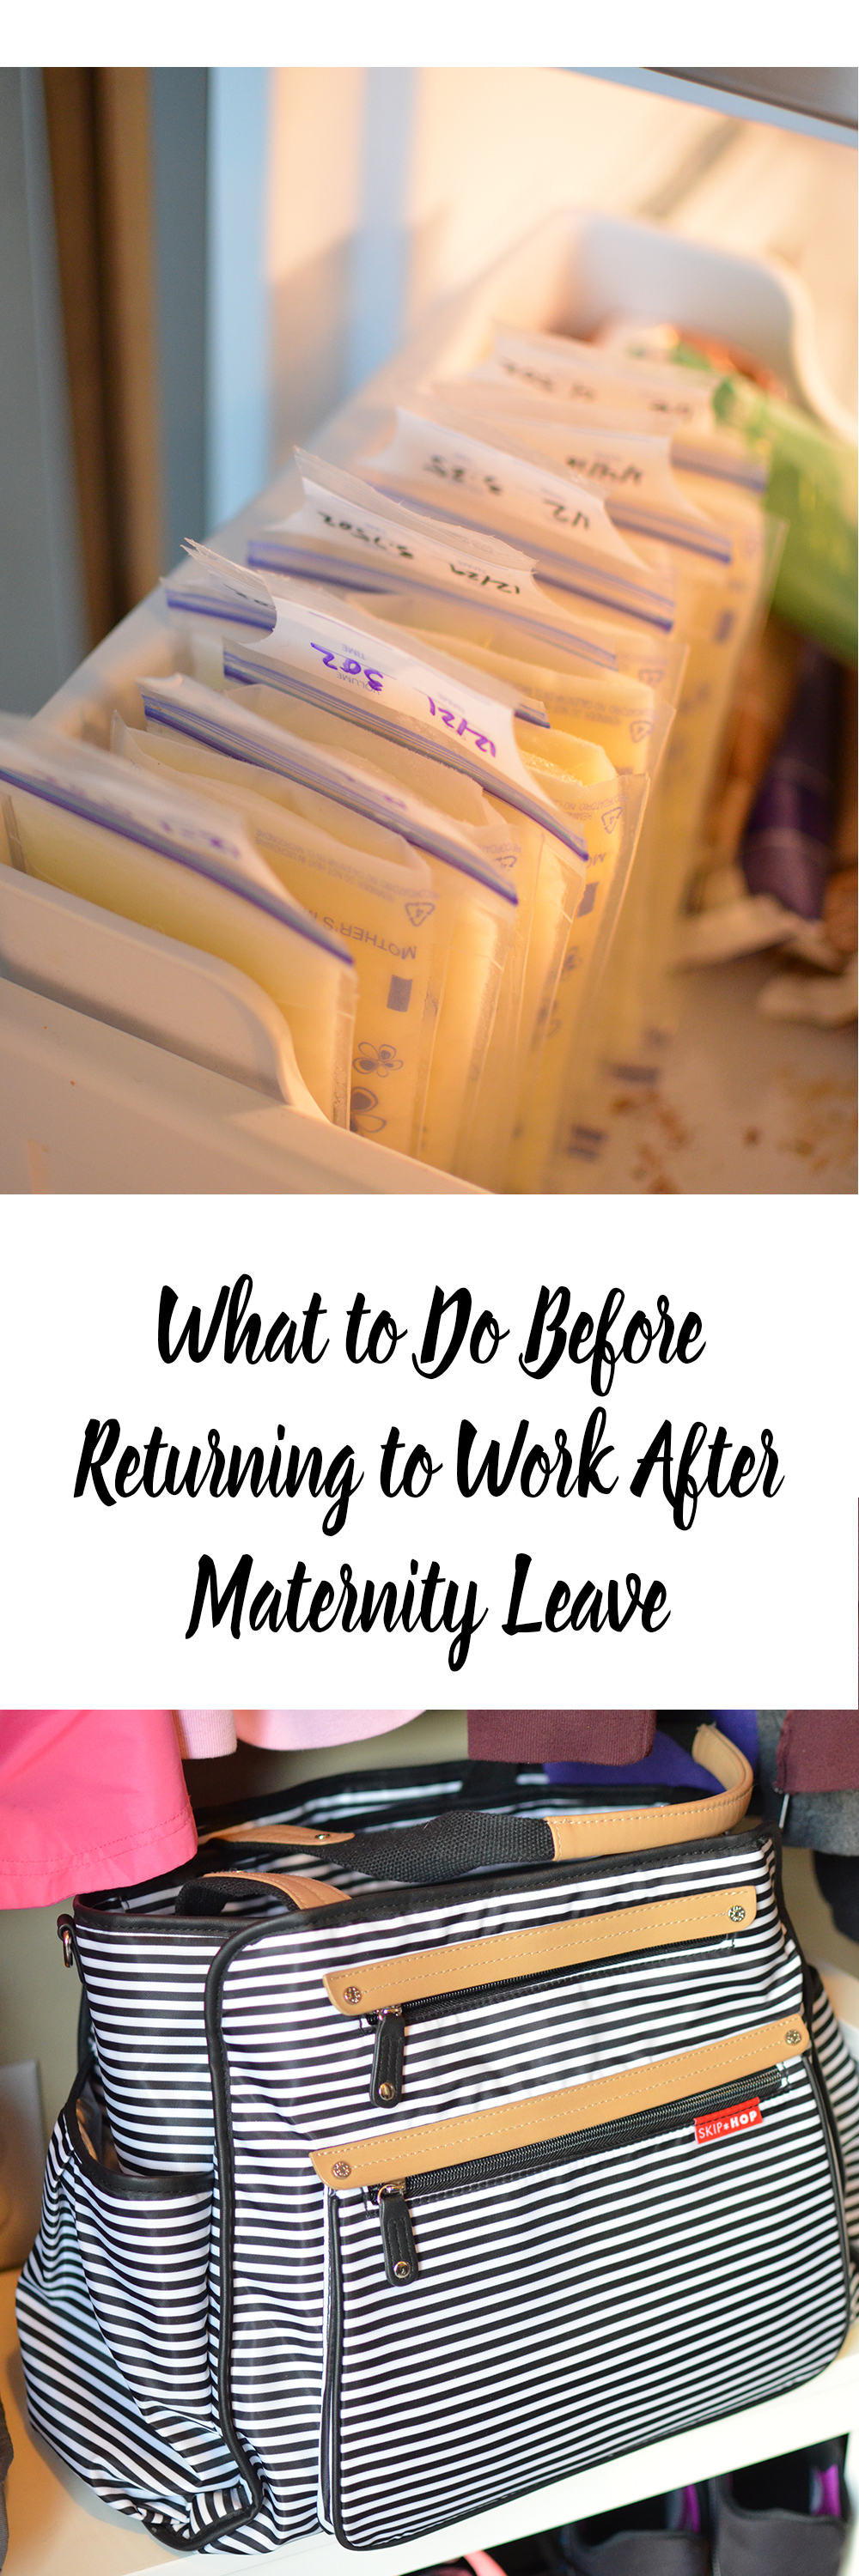 Heading back to work? Here are 10 tips to prepare to go back to work after maternity leave!